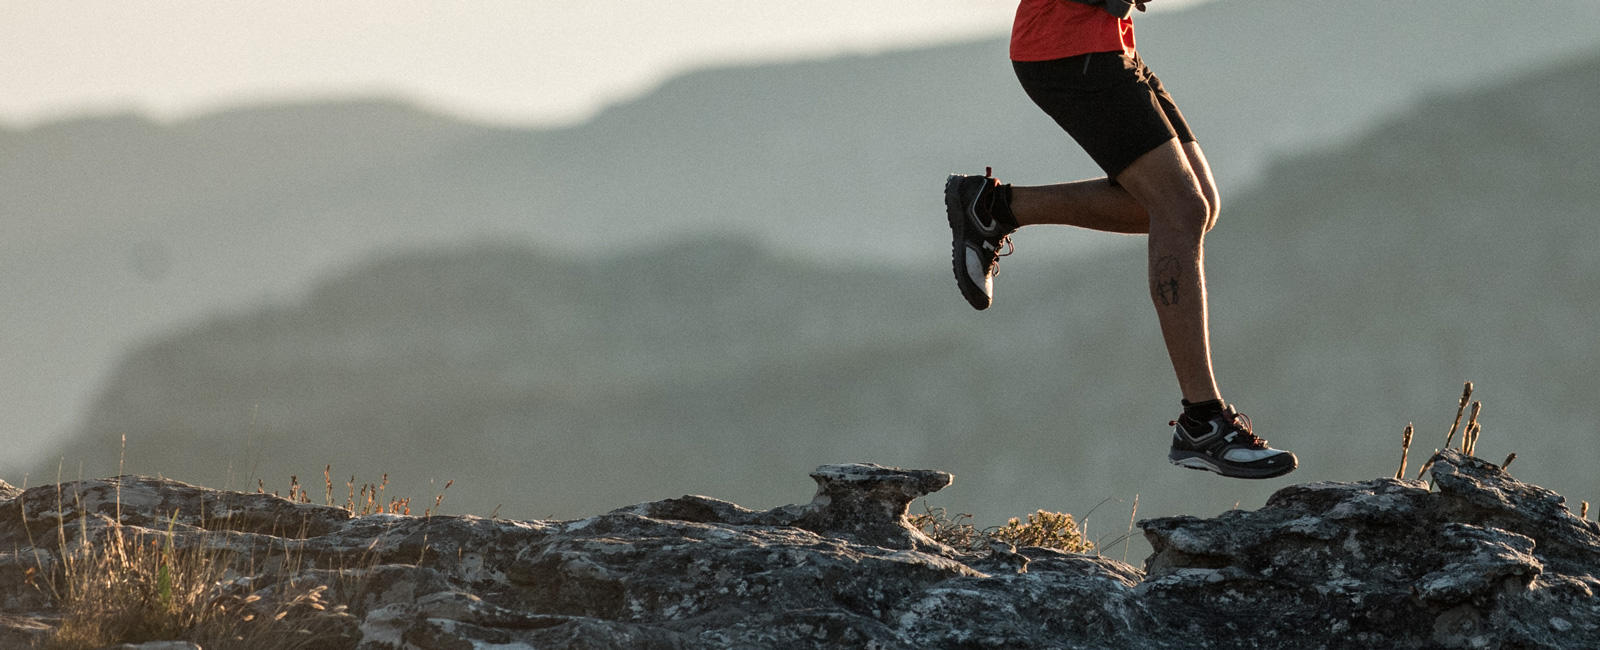 Looking After Your Feet: How Can You Avoid Exercise-Induced Purpura When Hiking?